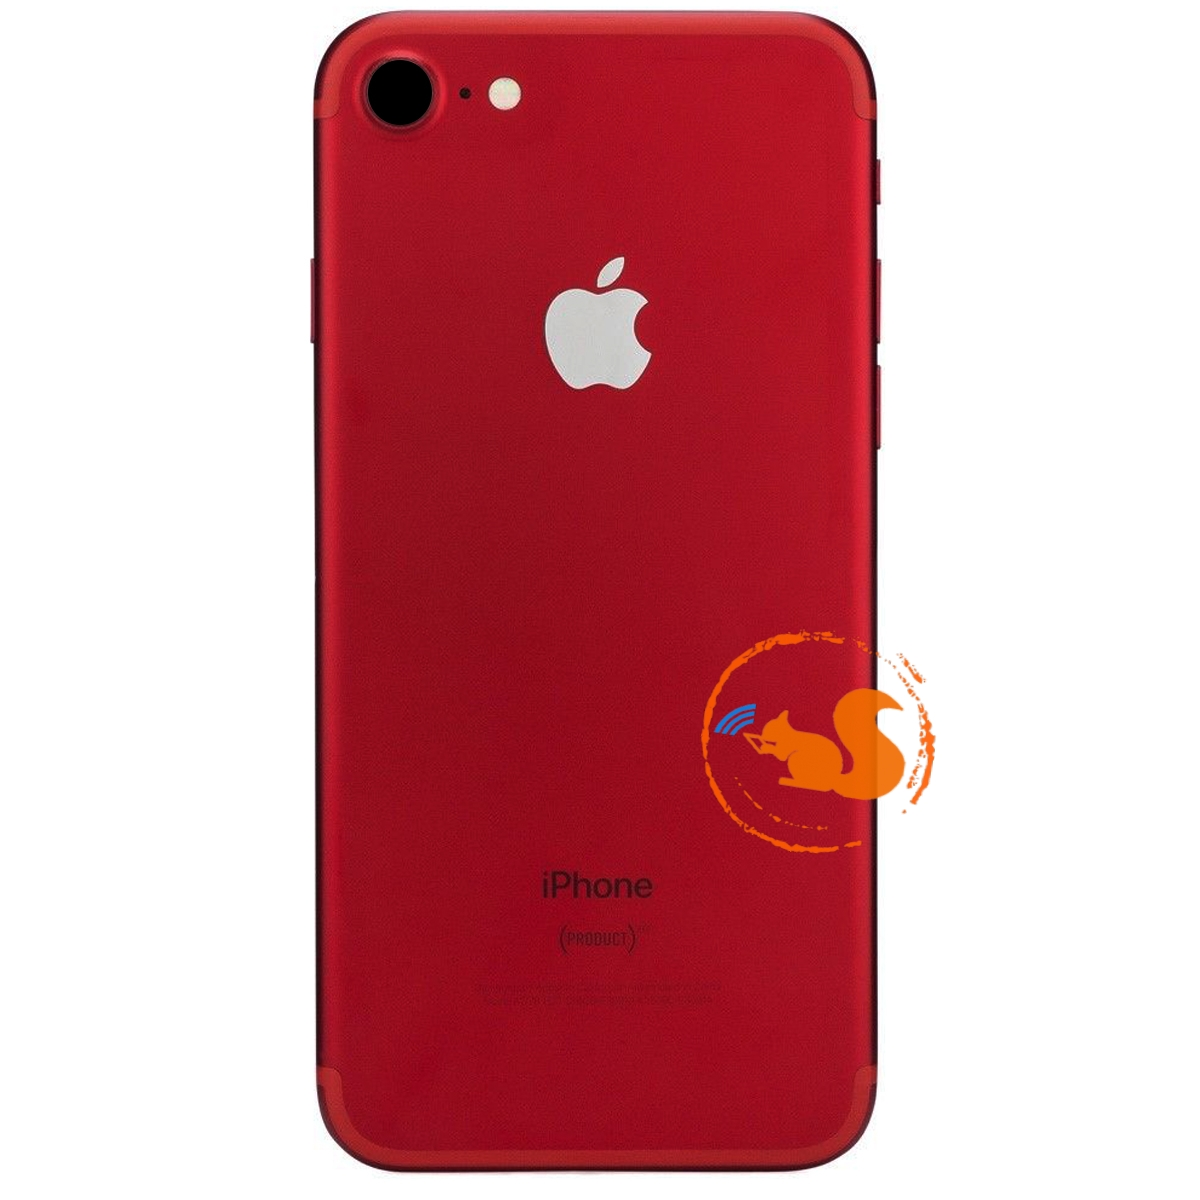 Xuong-vo-iphone-7-G-Red-product